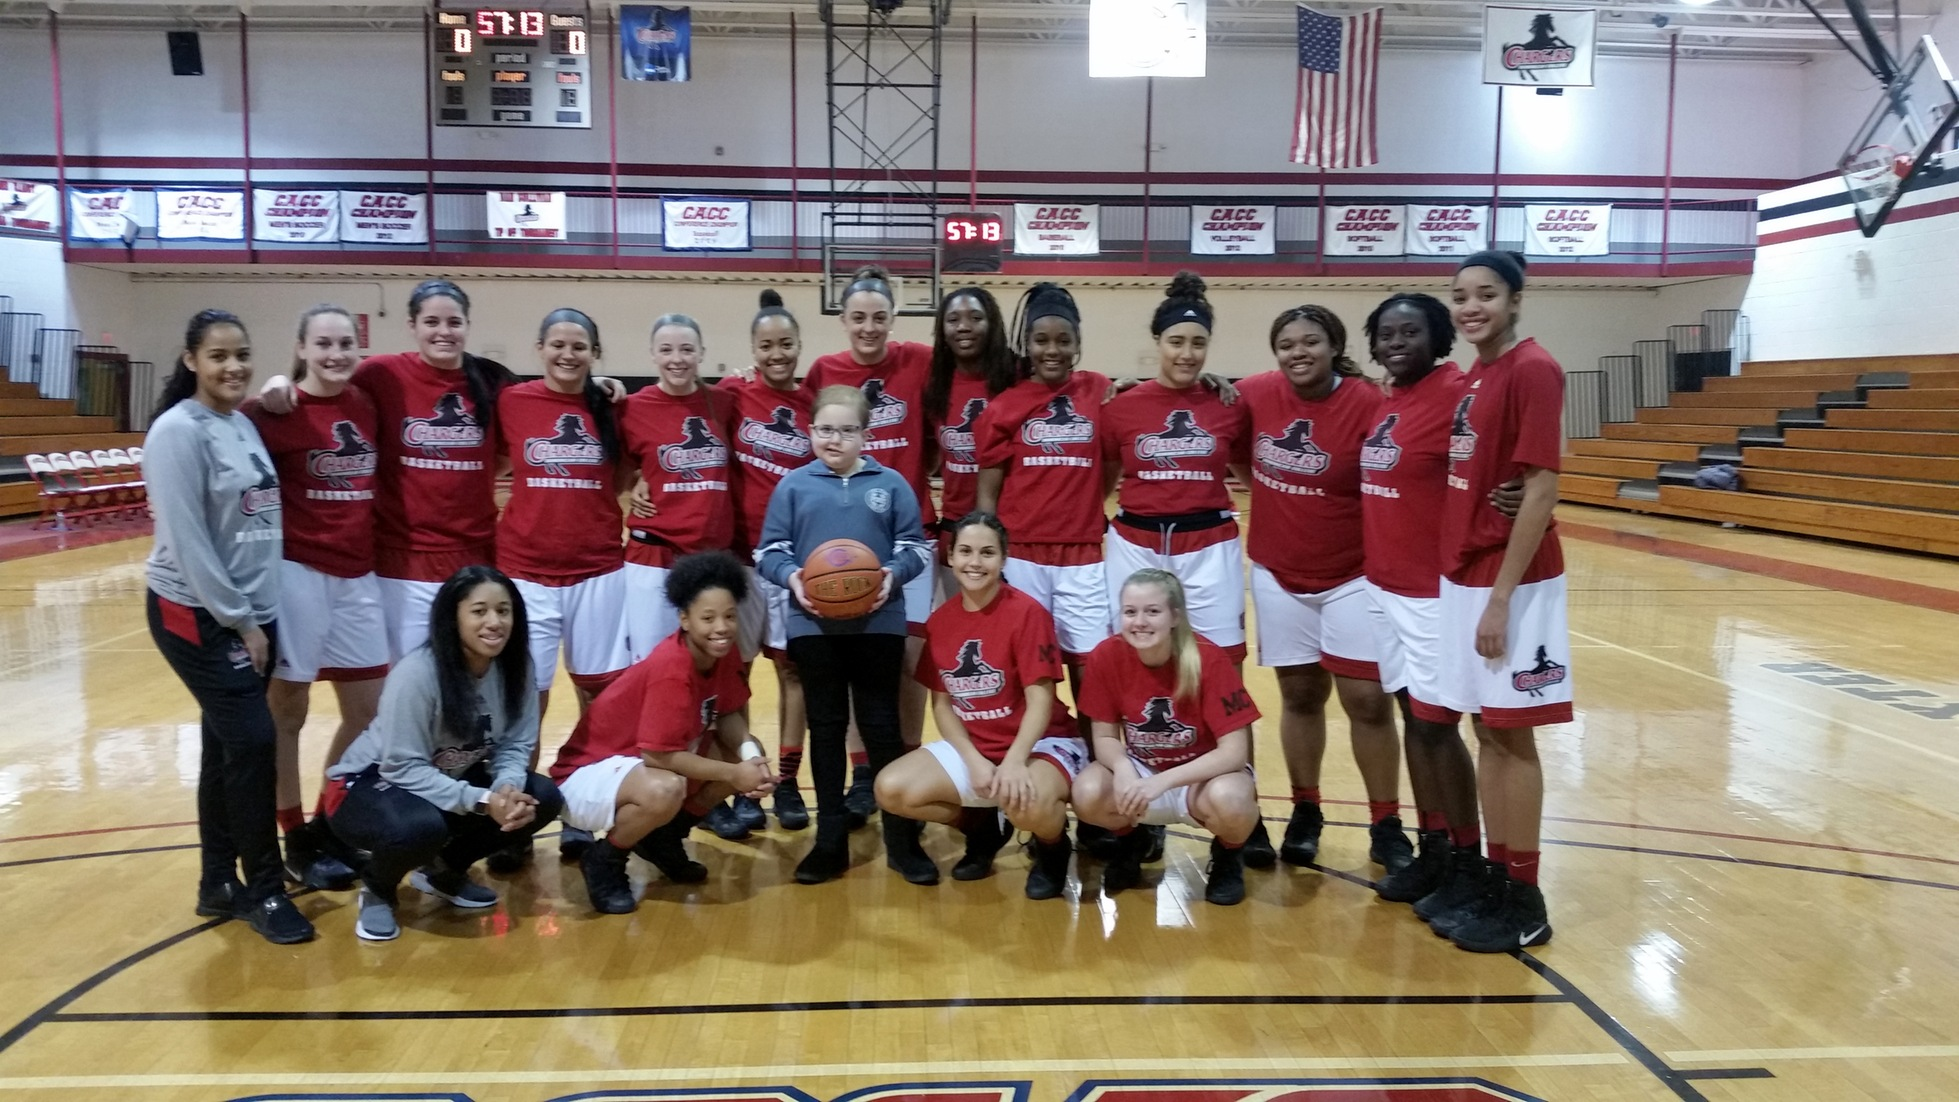 LADY CHARGERS GET WIN OVER GRIFFINS ON ALUMNI DAY